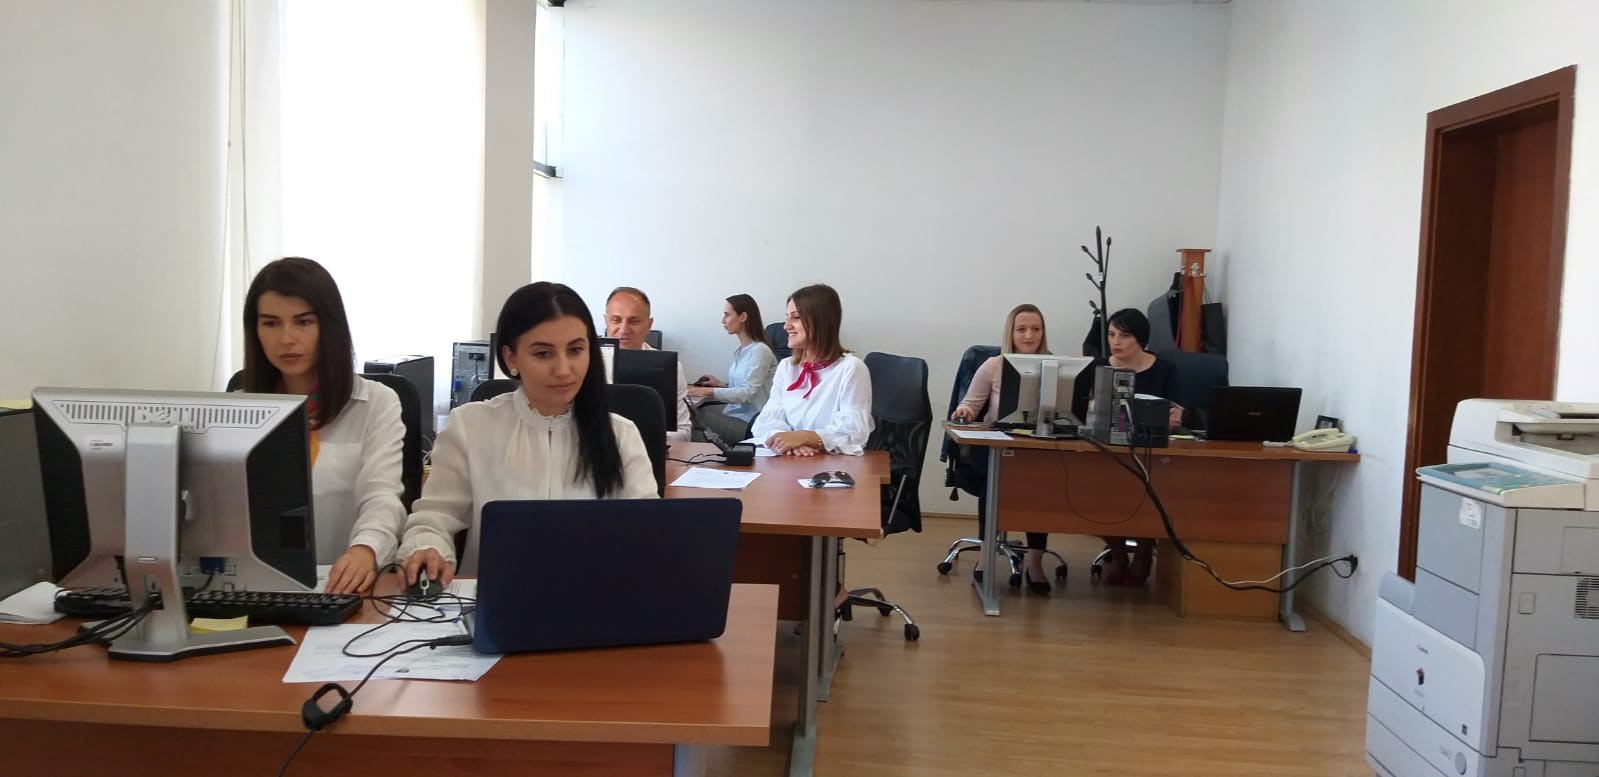 Basic Court of Prishtina – Drenas Branch began the implementation of the CMIS for civil cases